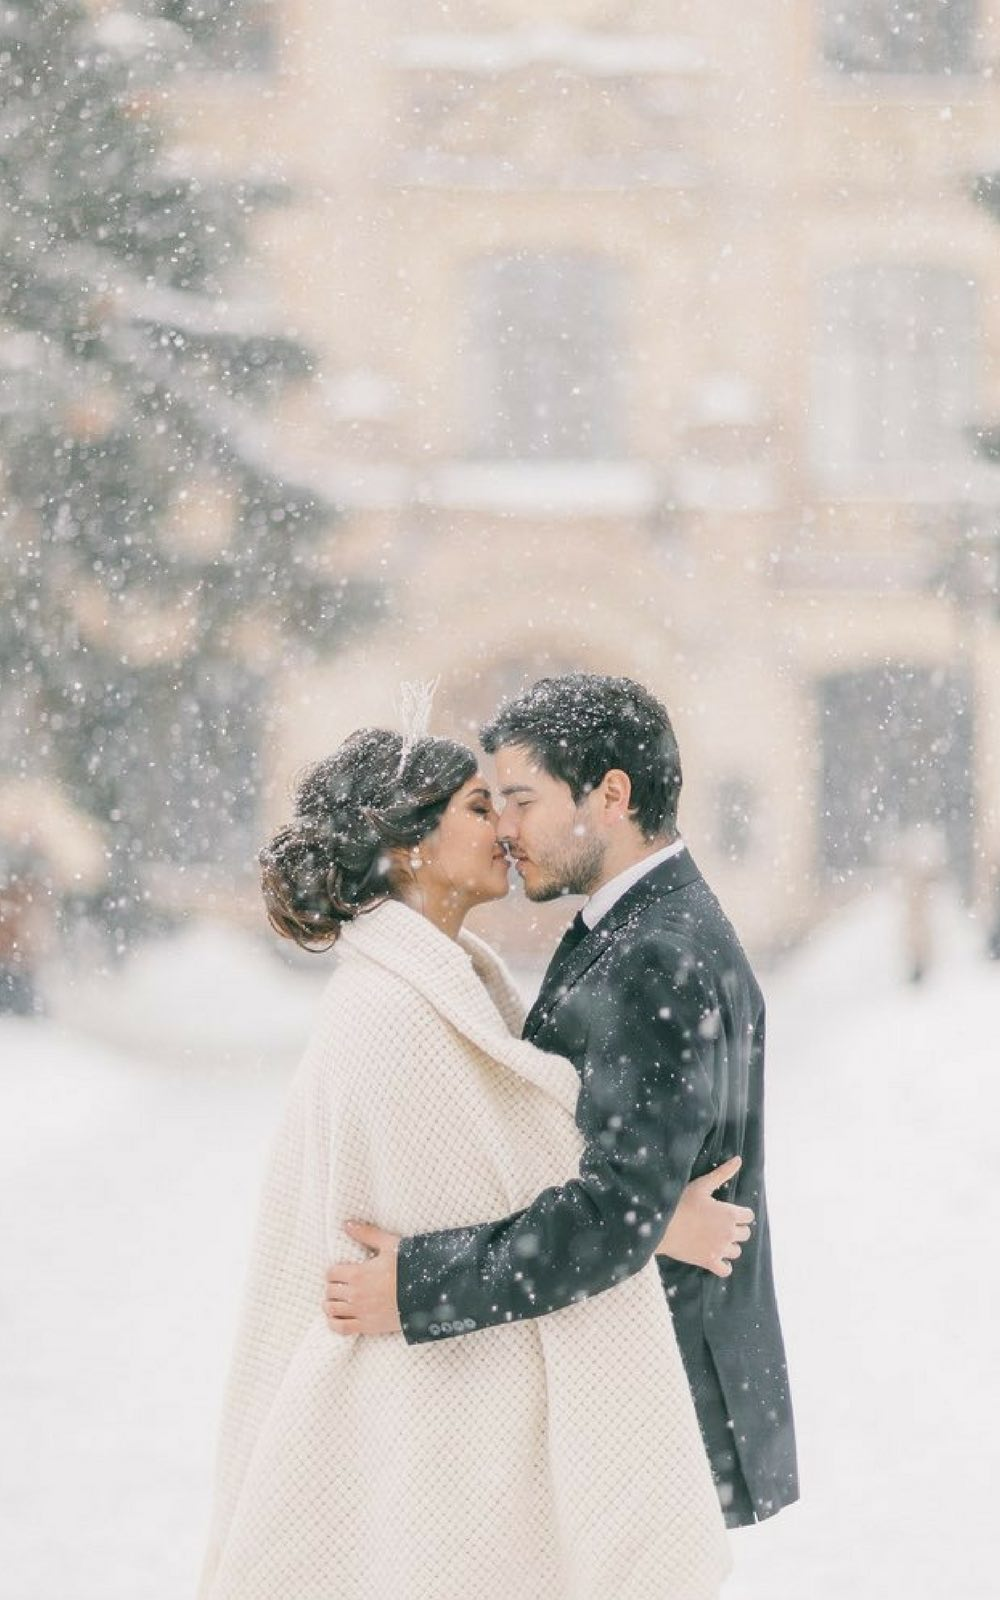 Fairytale winter wedding | winter wedding inspiration | budget wedding inspiration